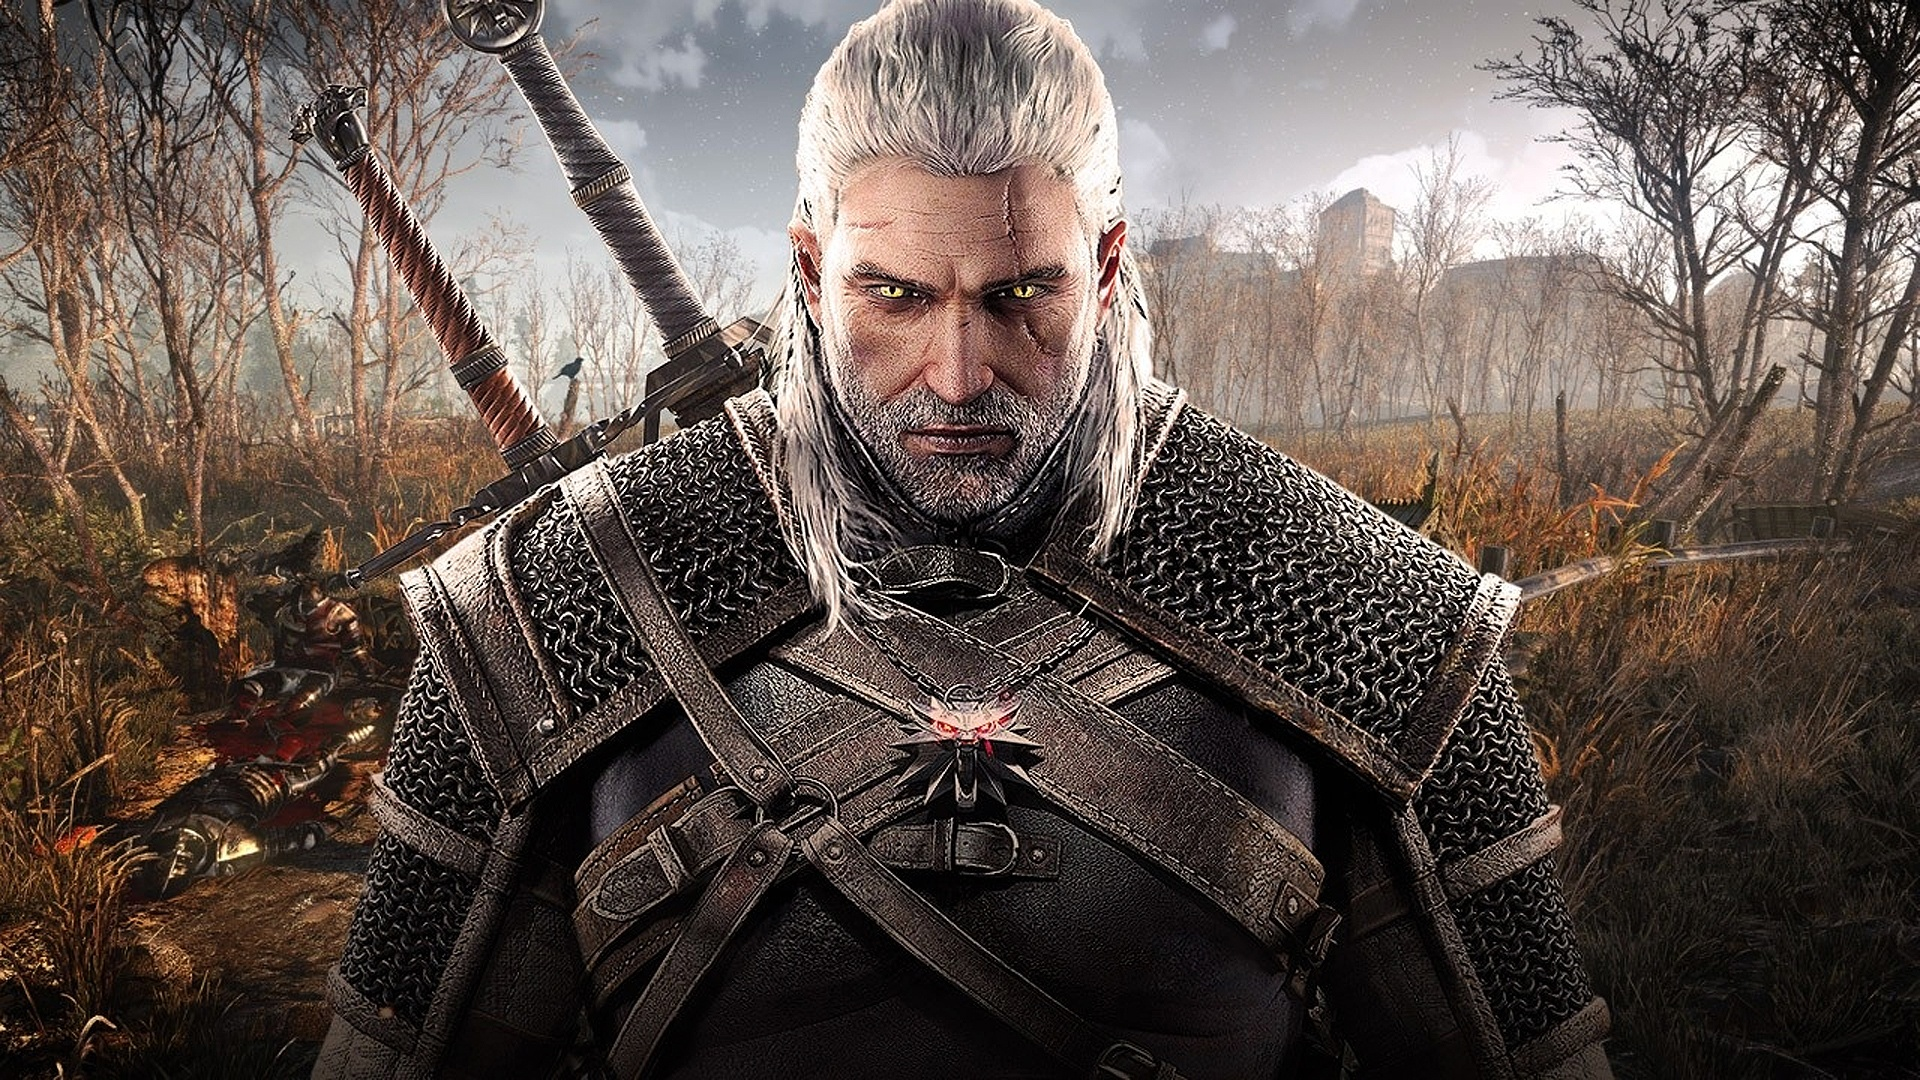 Six Actors Who Could Play Geralt Better in The Witcher Netflix Series